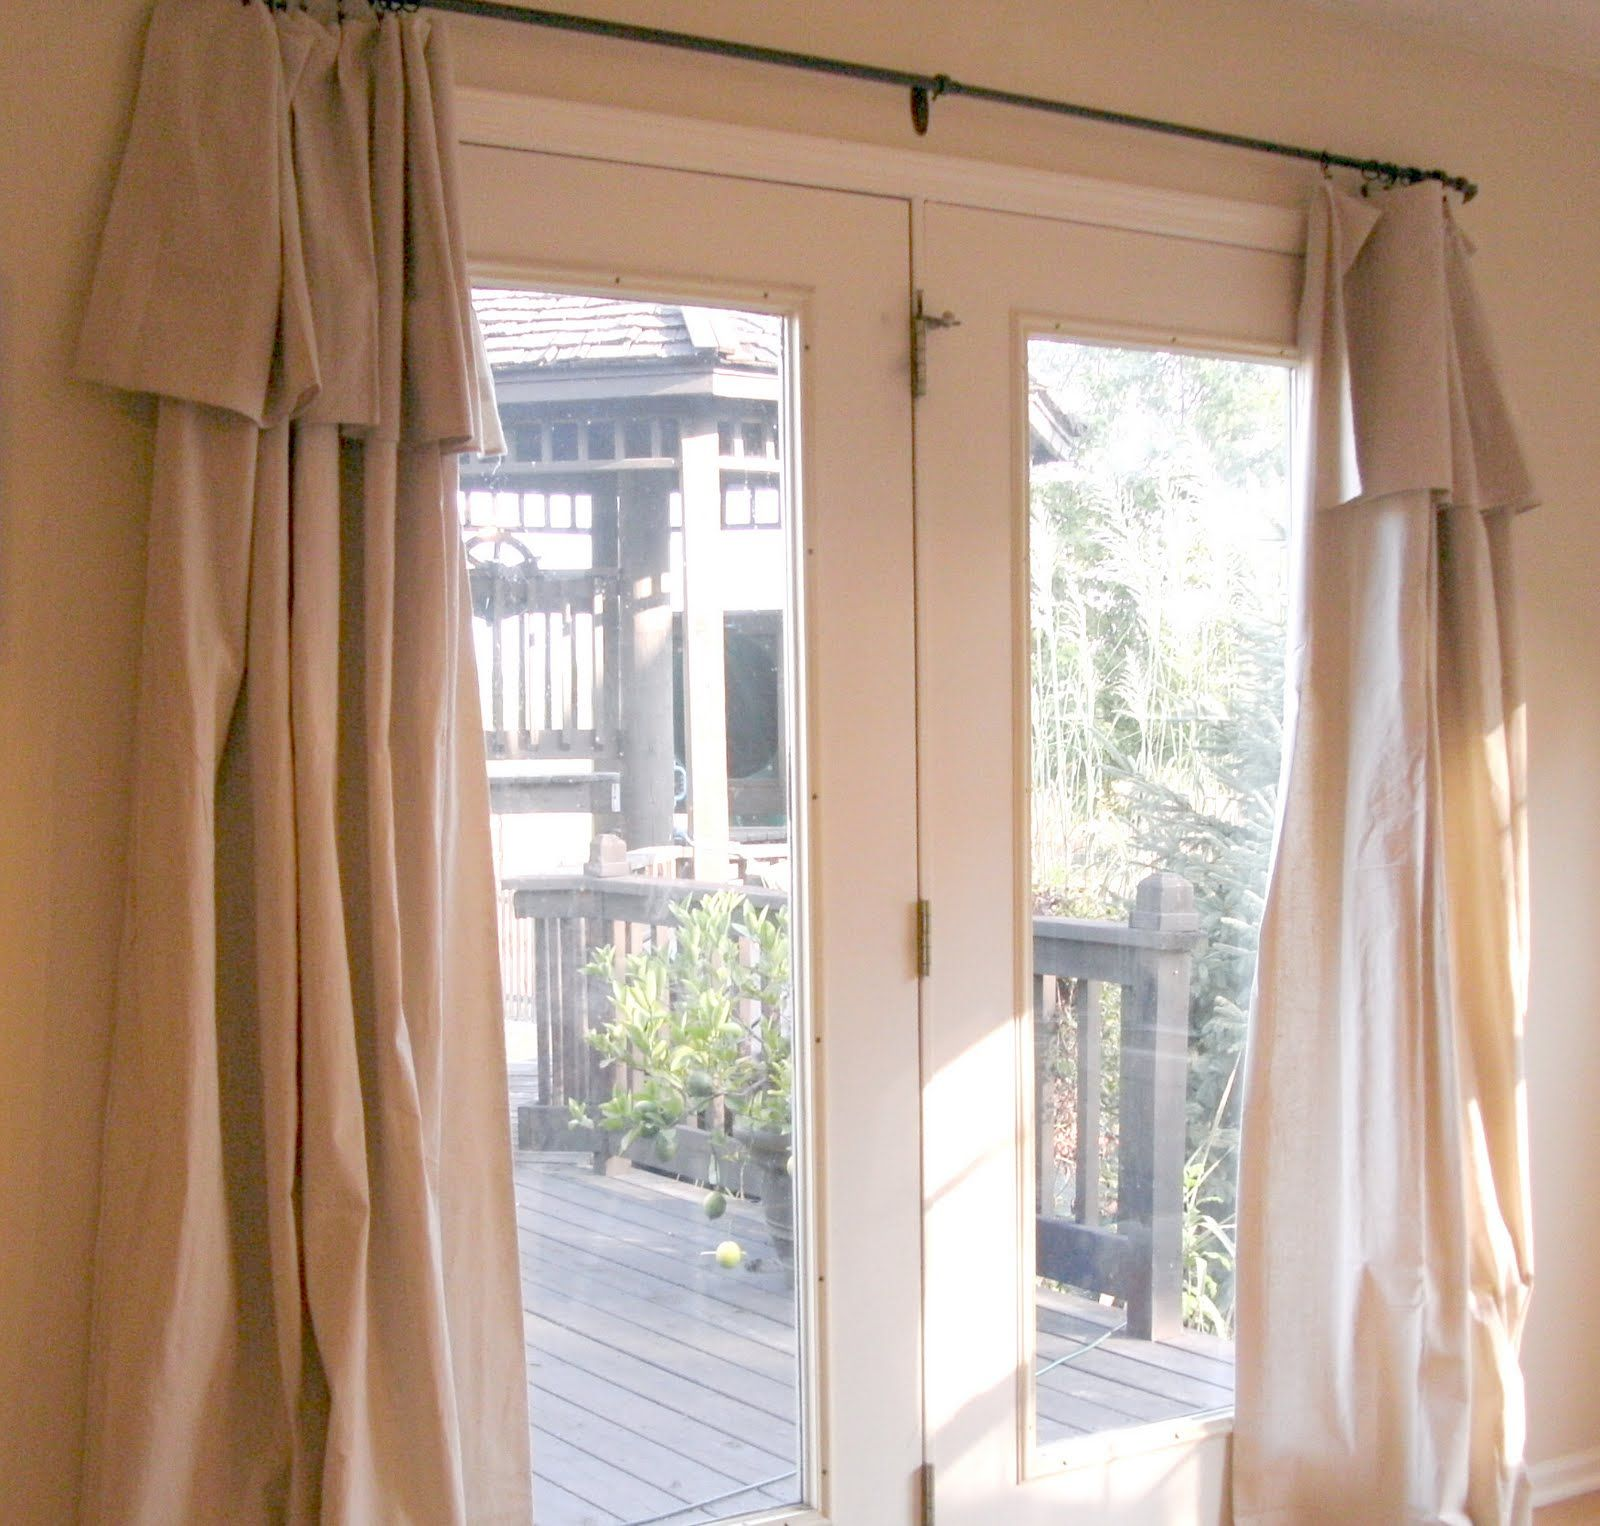 Sketch of patio door curtain ideas interior design ideas for Patio door ideas